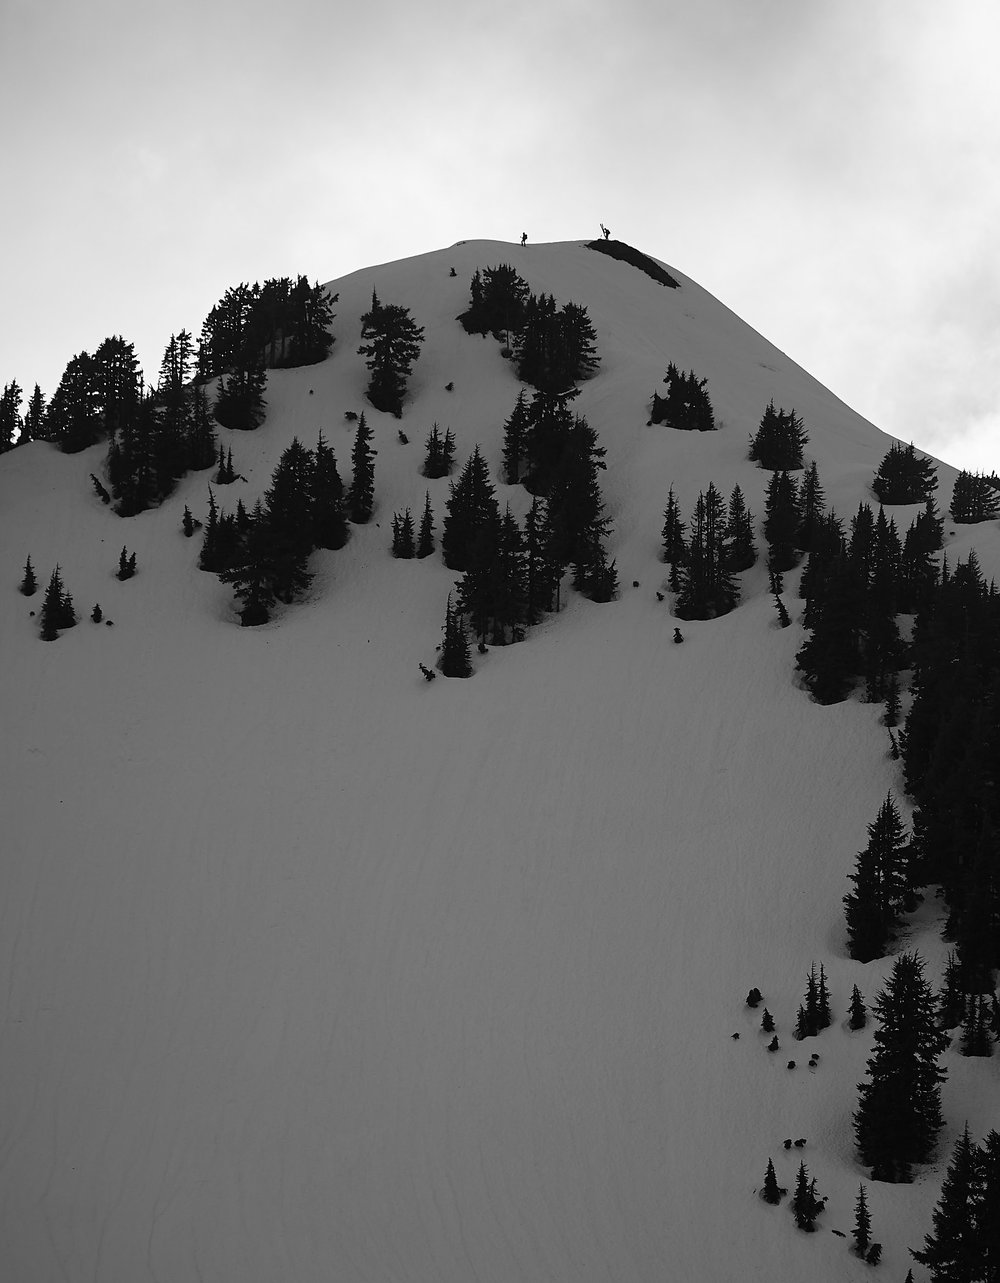 Two of the people staying in the hut can be seen here at the top of nearby peak ready to ski down.